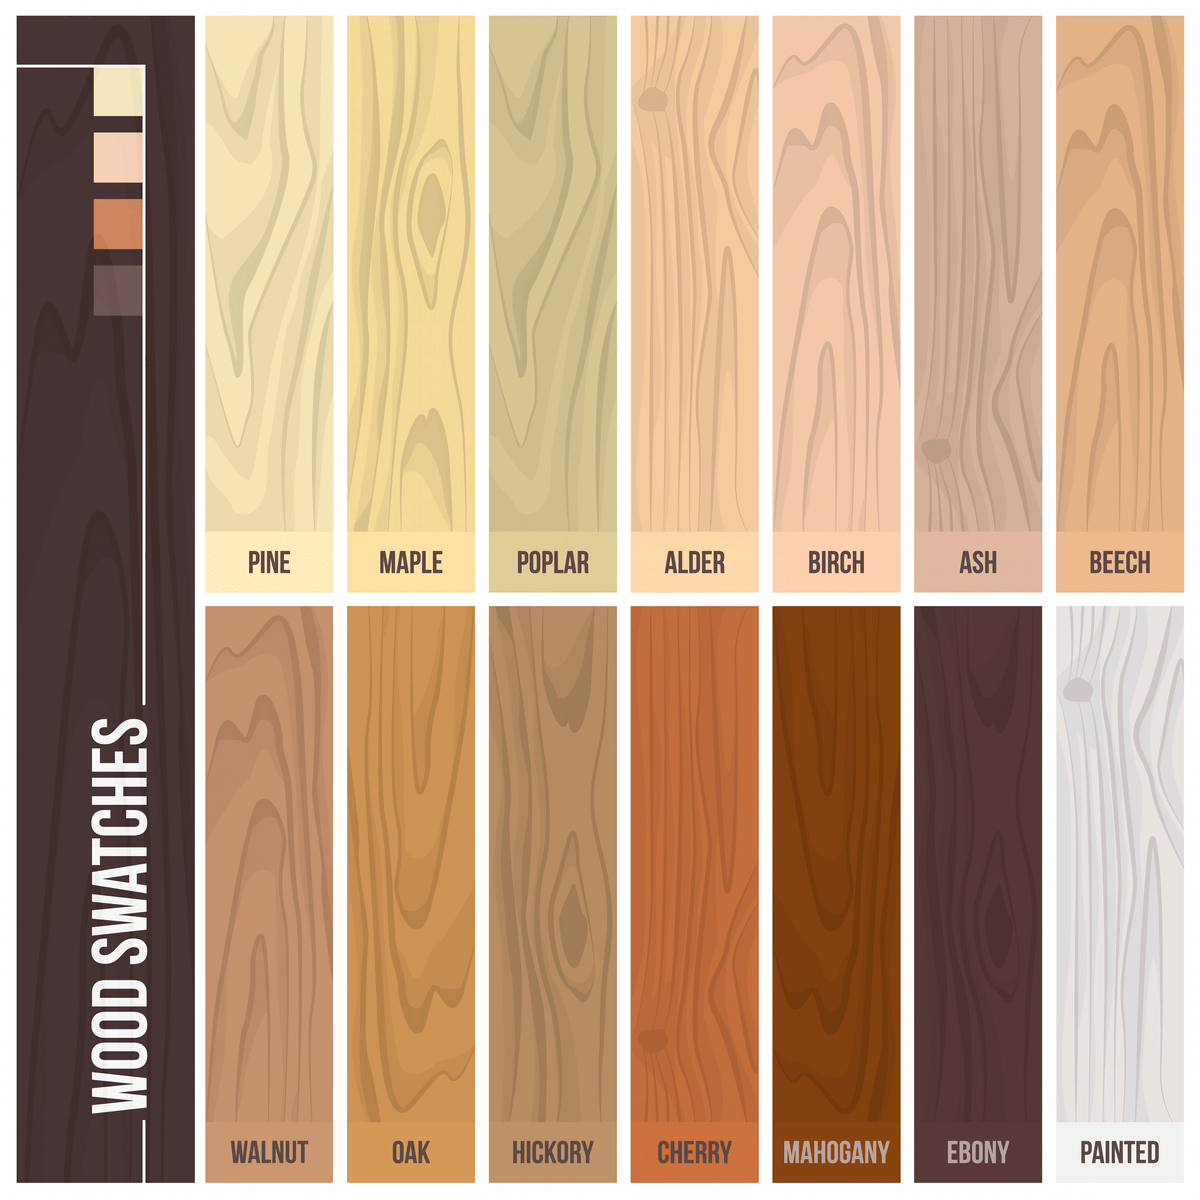 Types Of Hardwood Flooring Ilrated Guide Comparing Colors